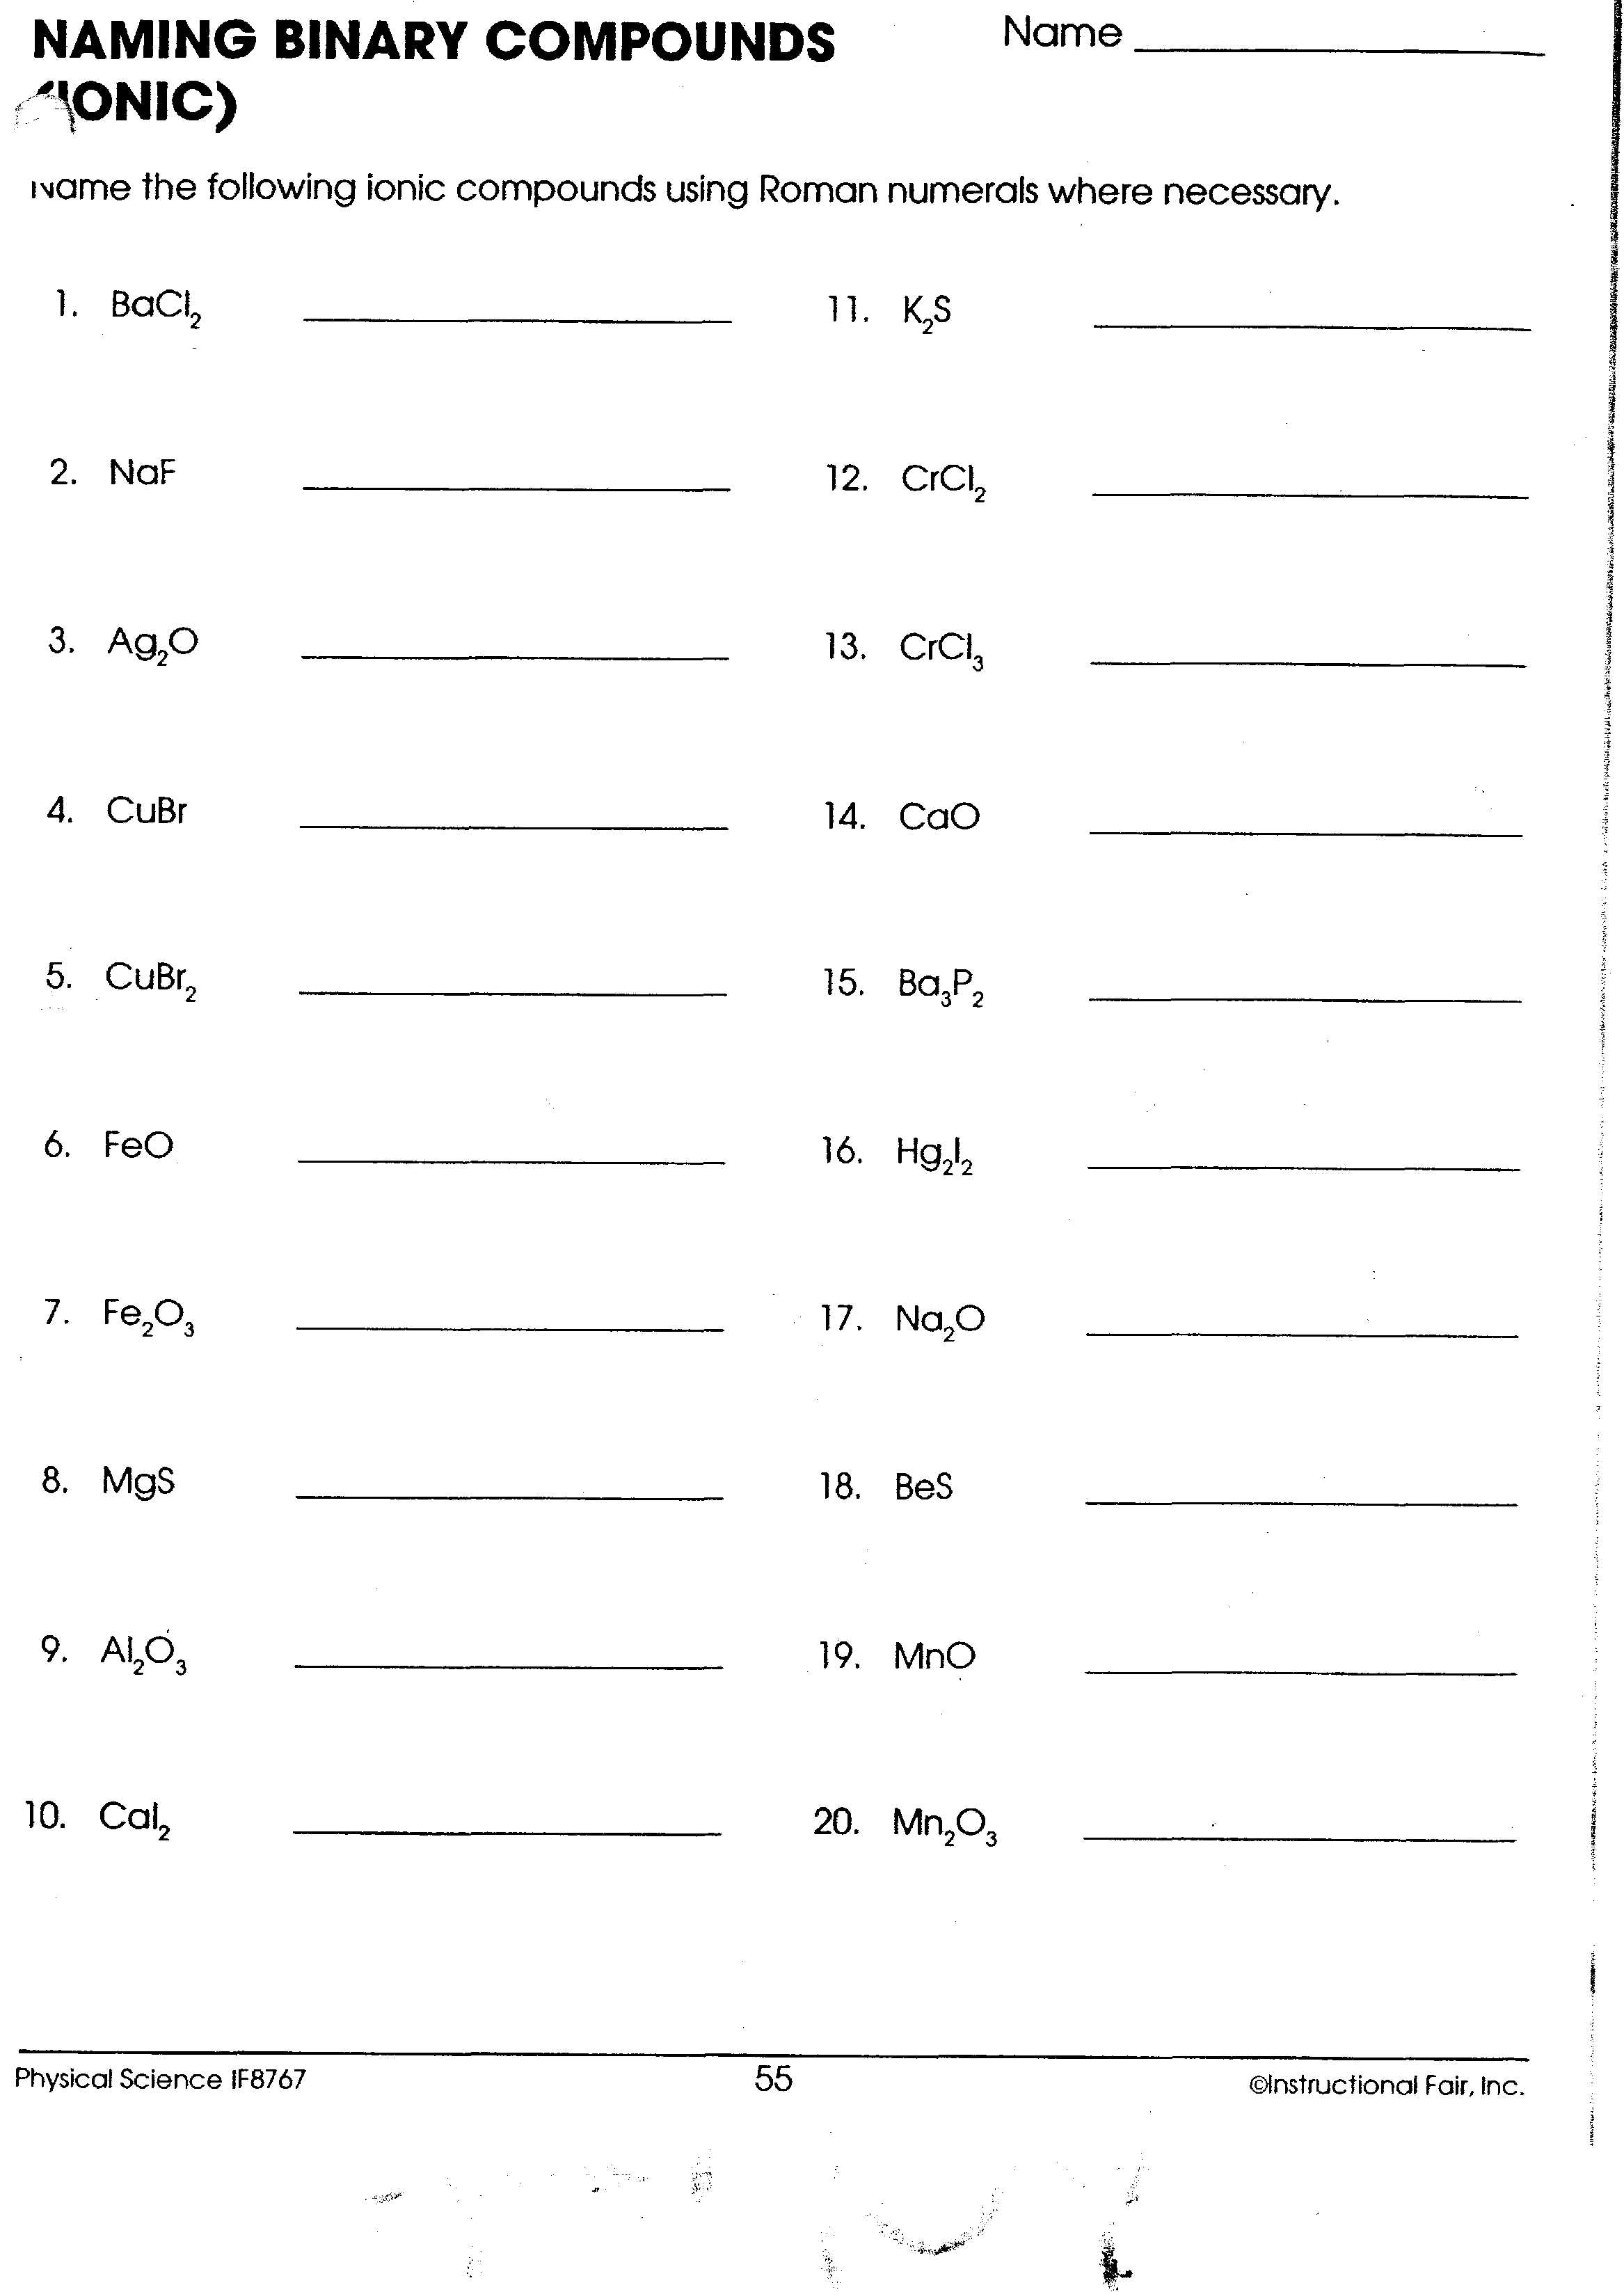 Printables Ionic Compounds Worksheet binary compounds worksheet versaldobip naming laveyla com